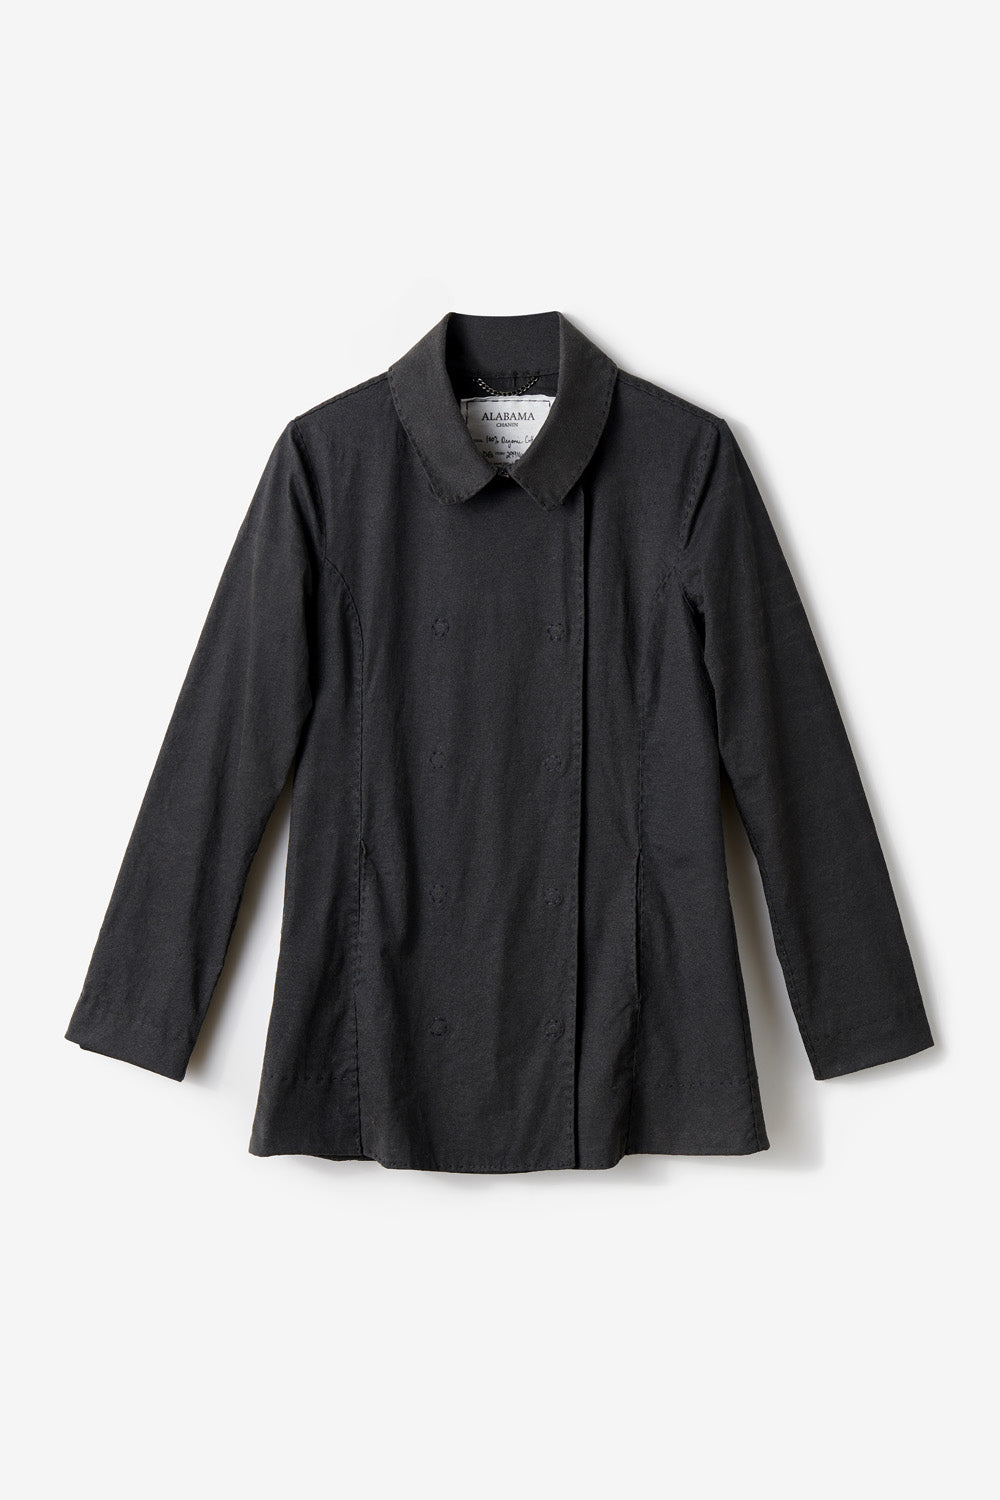 Alabama Chanin The Peacoat Hand Sewn and Hand-painted Women's Peacoat in Black